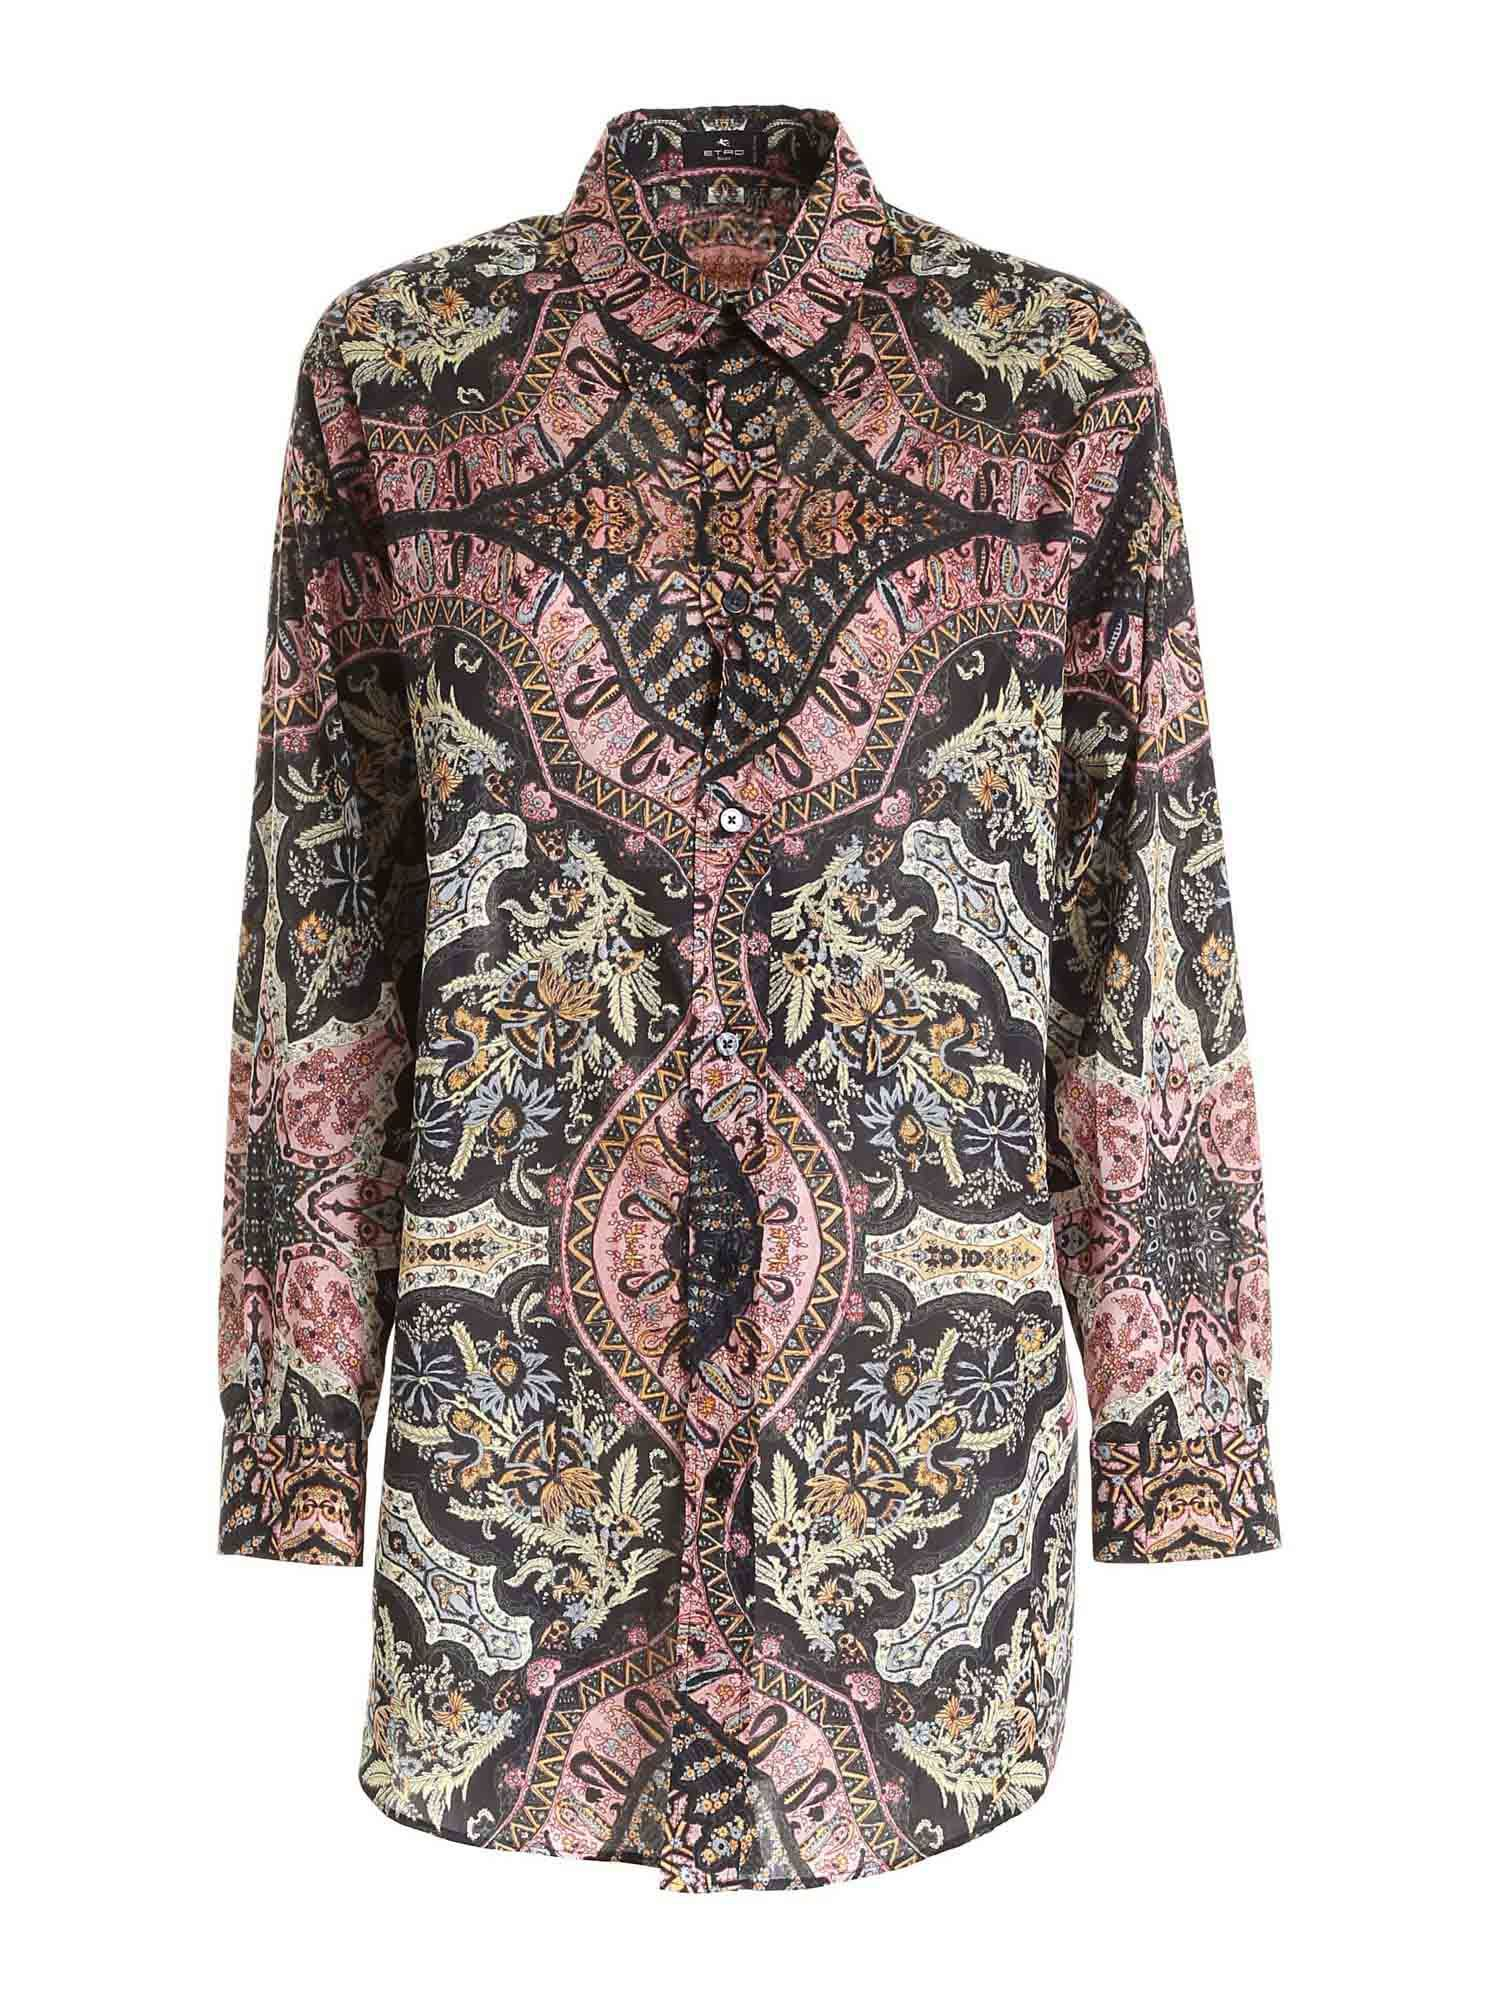 Etro PRINTED SHIRT IN BLACK